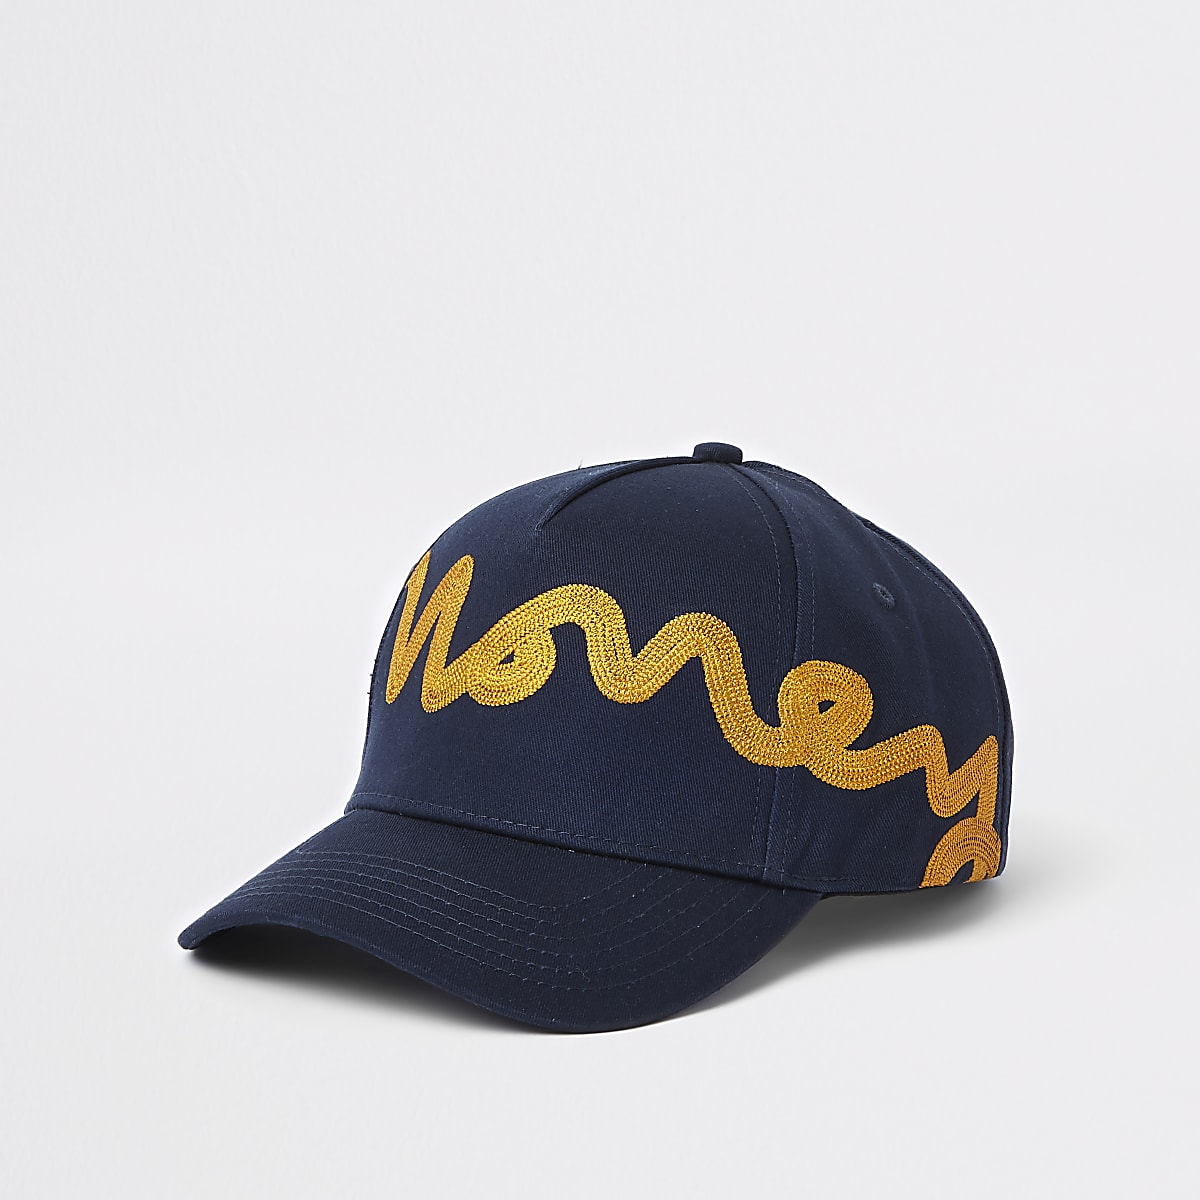 e12e99e76884a Money Clothing navy baseball cap - Hats   Caps - Accessories - men